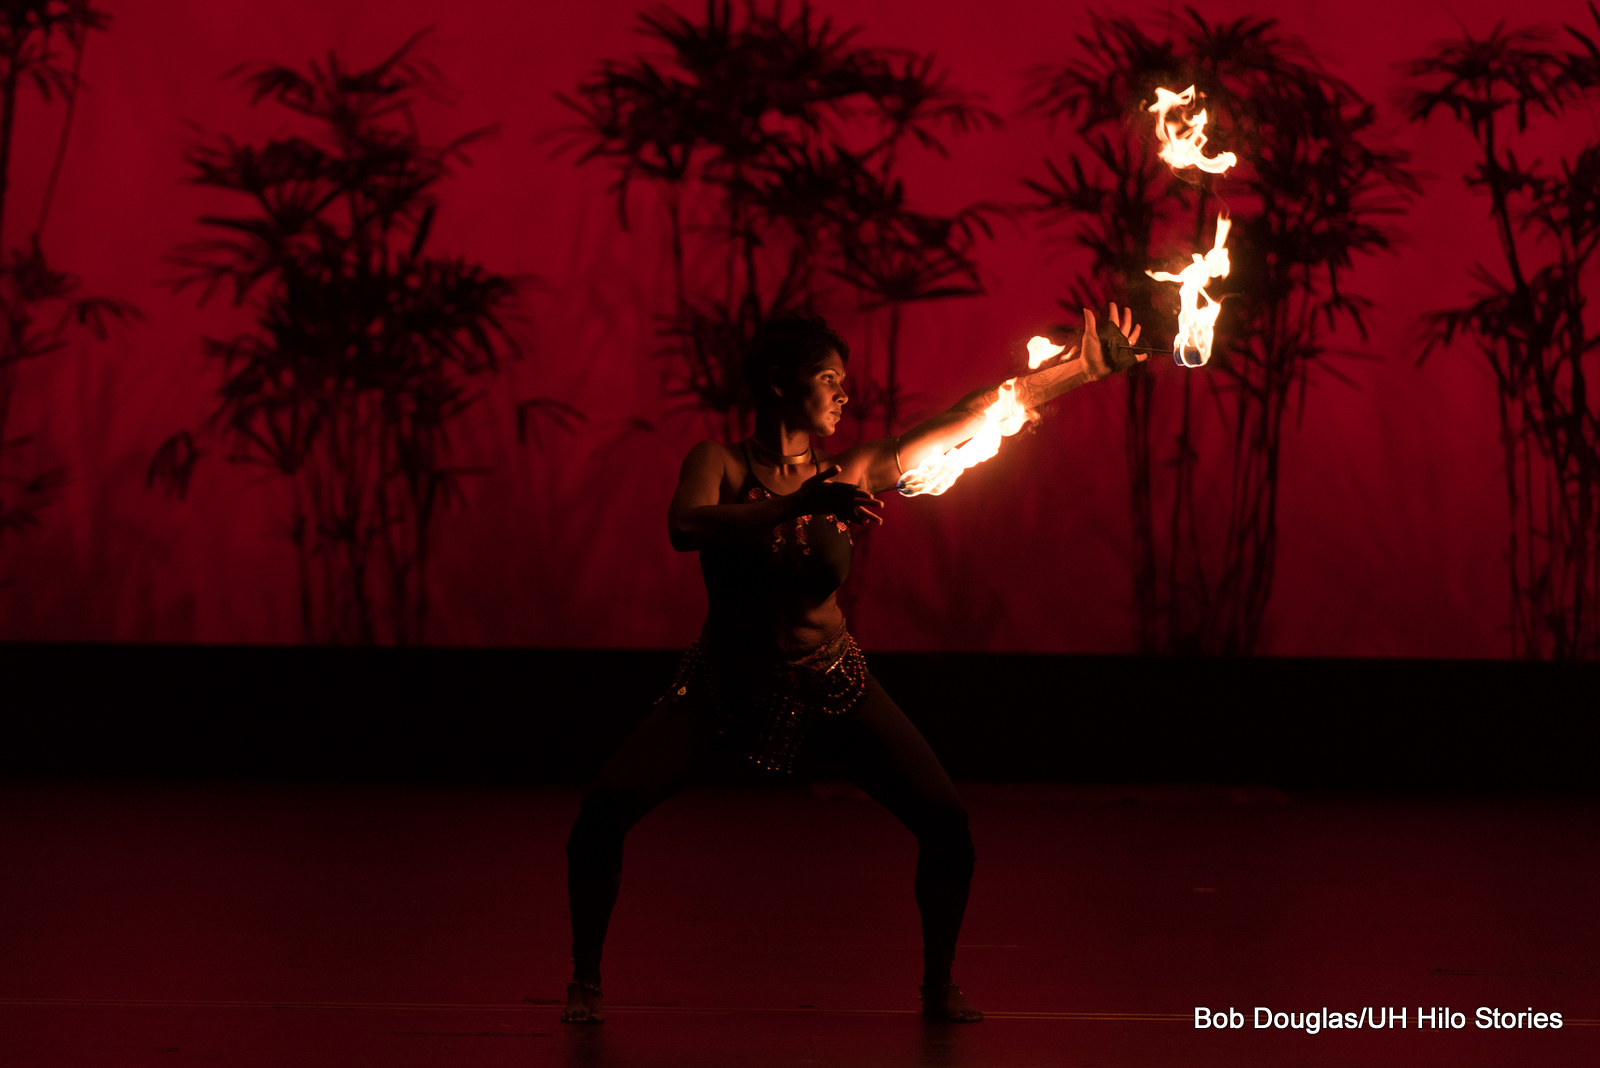 Woman dancer with flames coming off her hands. Dark red lighting in background.